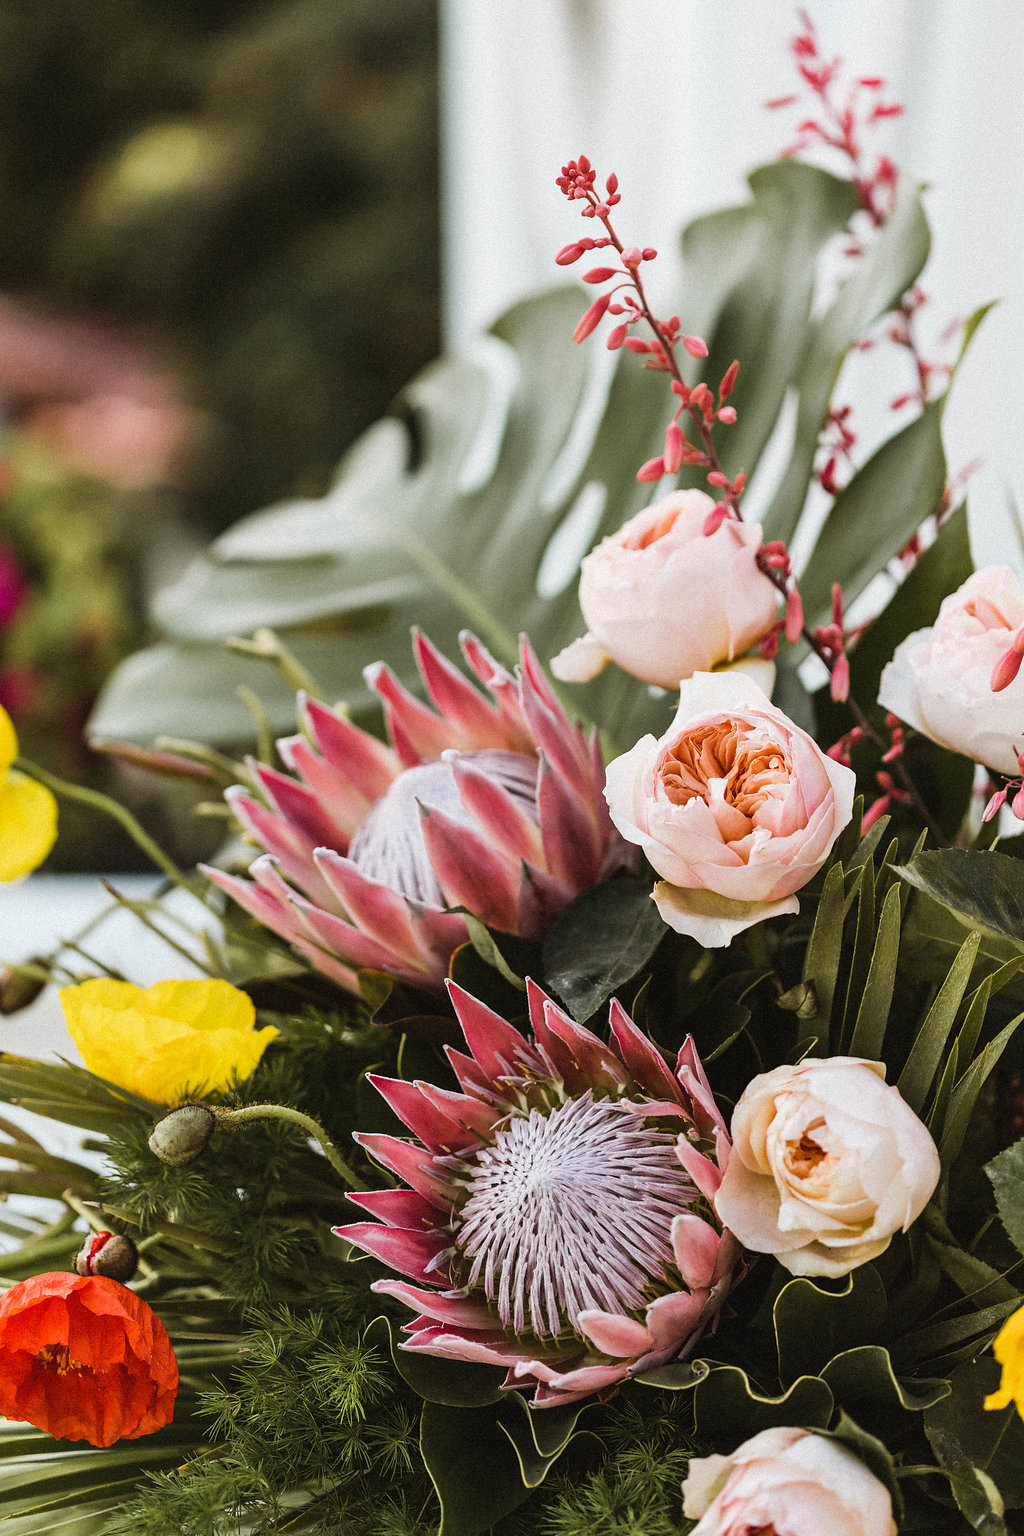 Wild, colorful desert flowers for a Palm Springs wedding / Avalon Palm Springs Wedding Bright Flowers